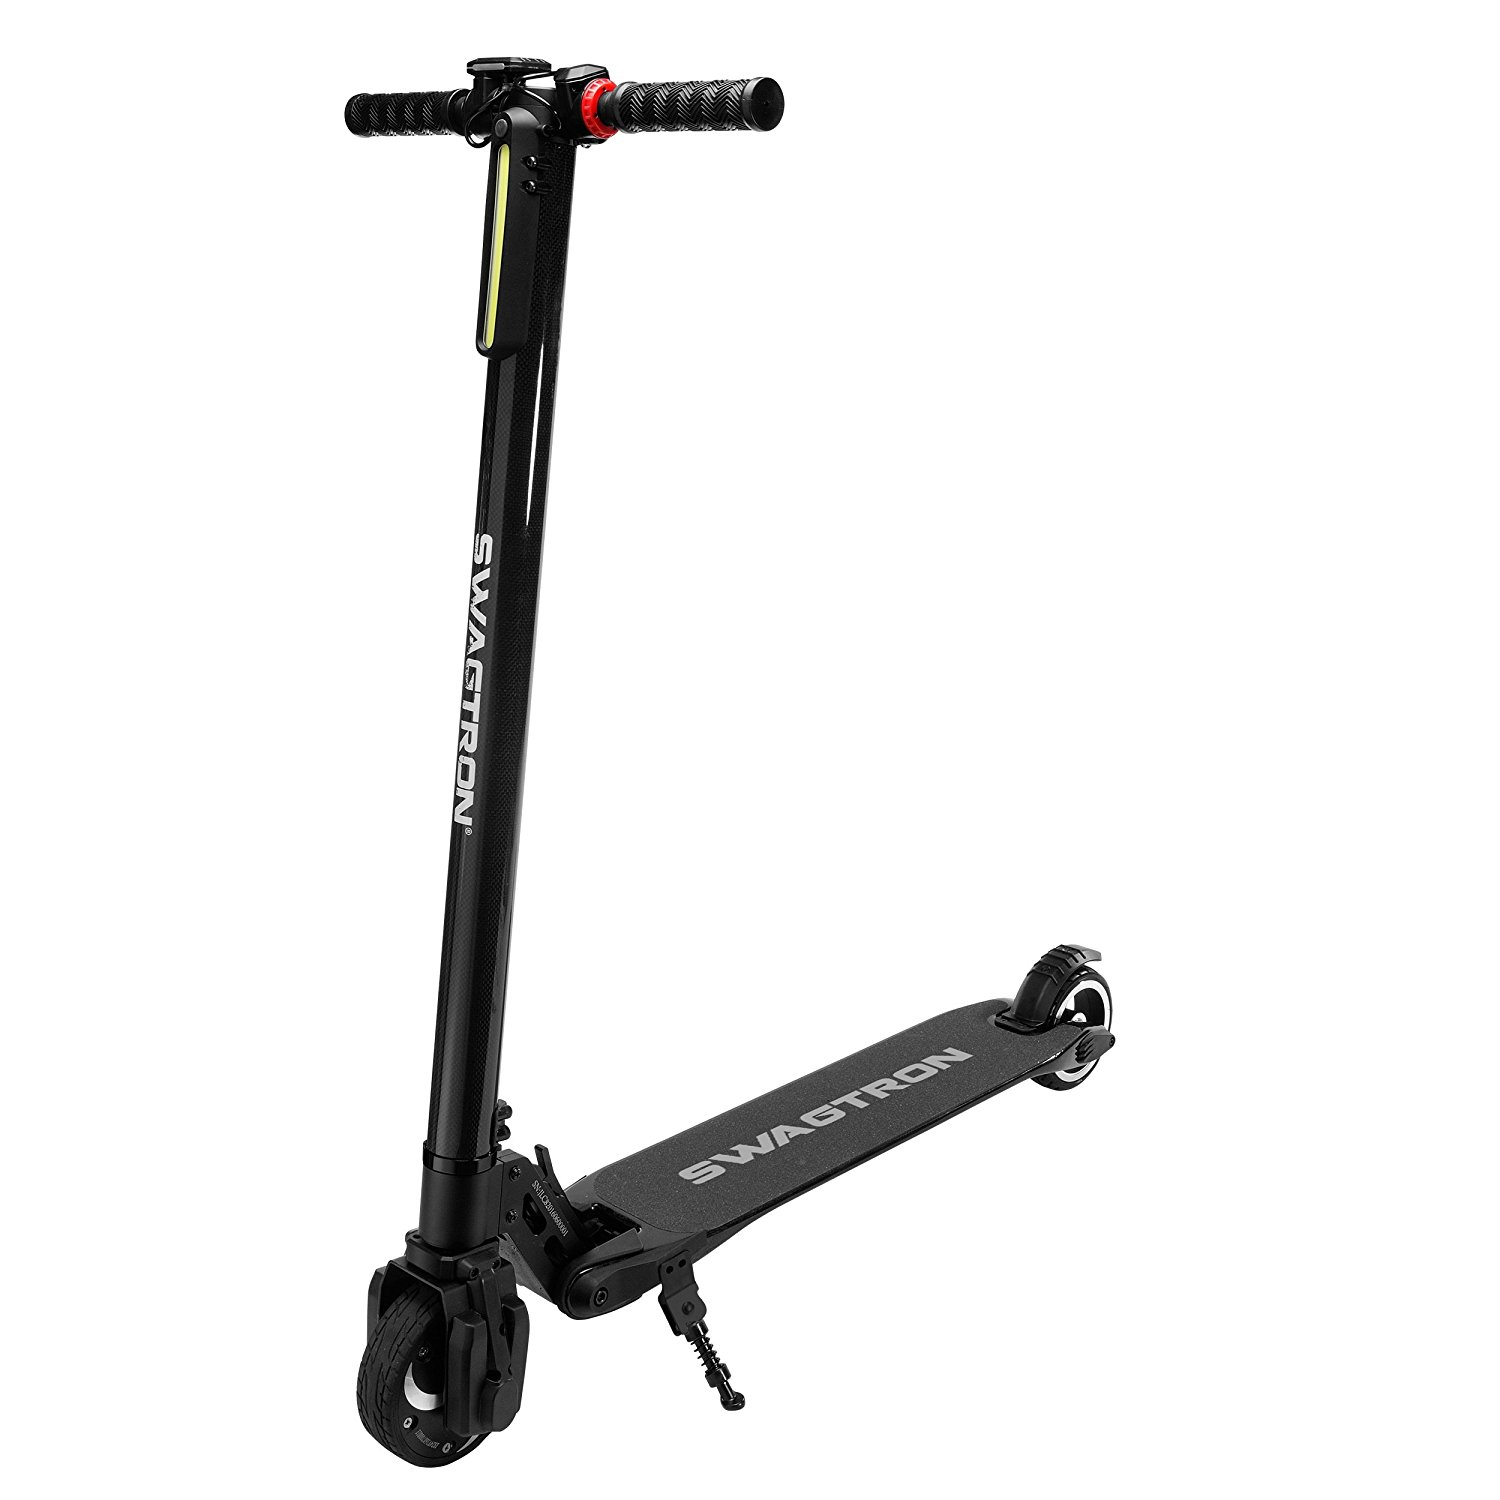 5 Best Electric Scooter For Adults